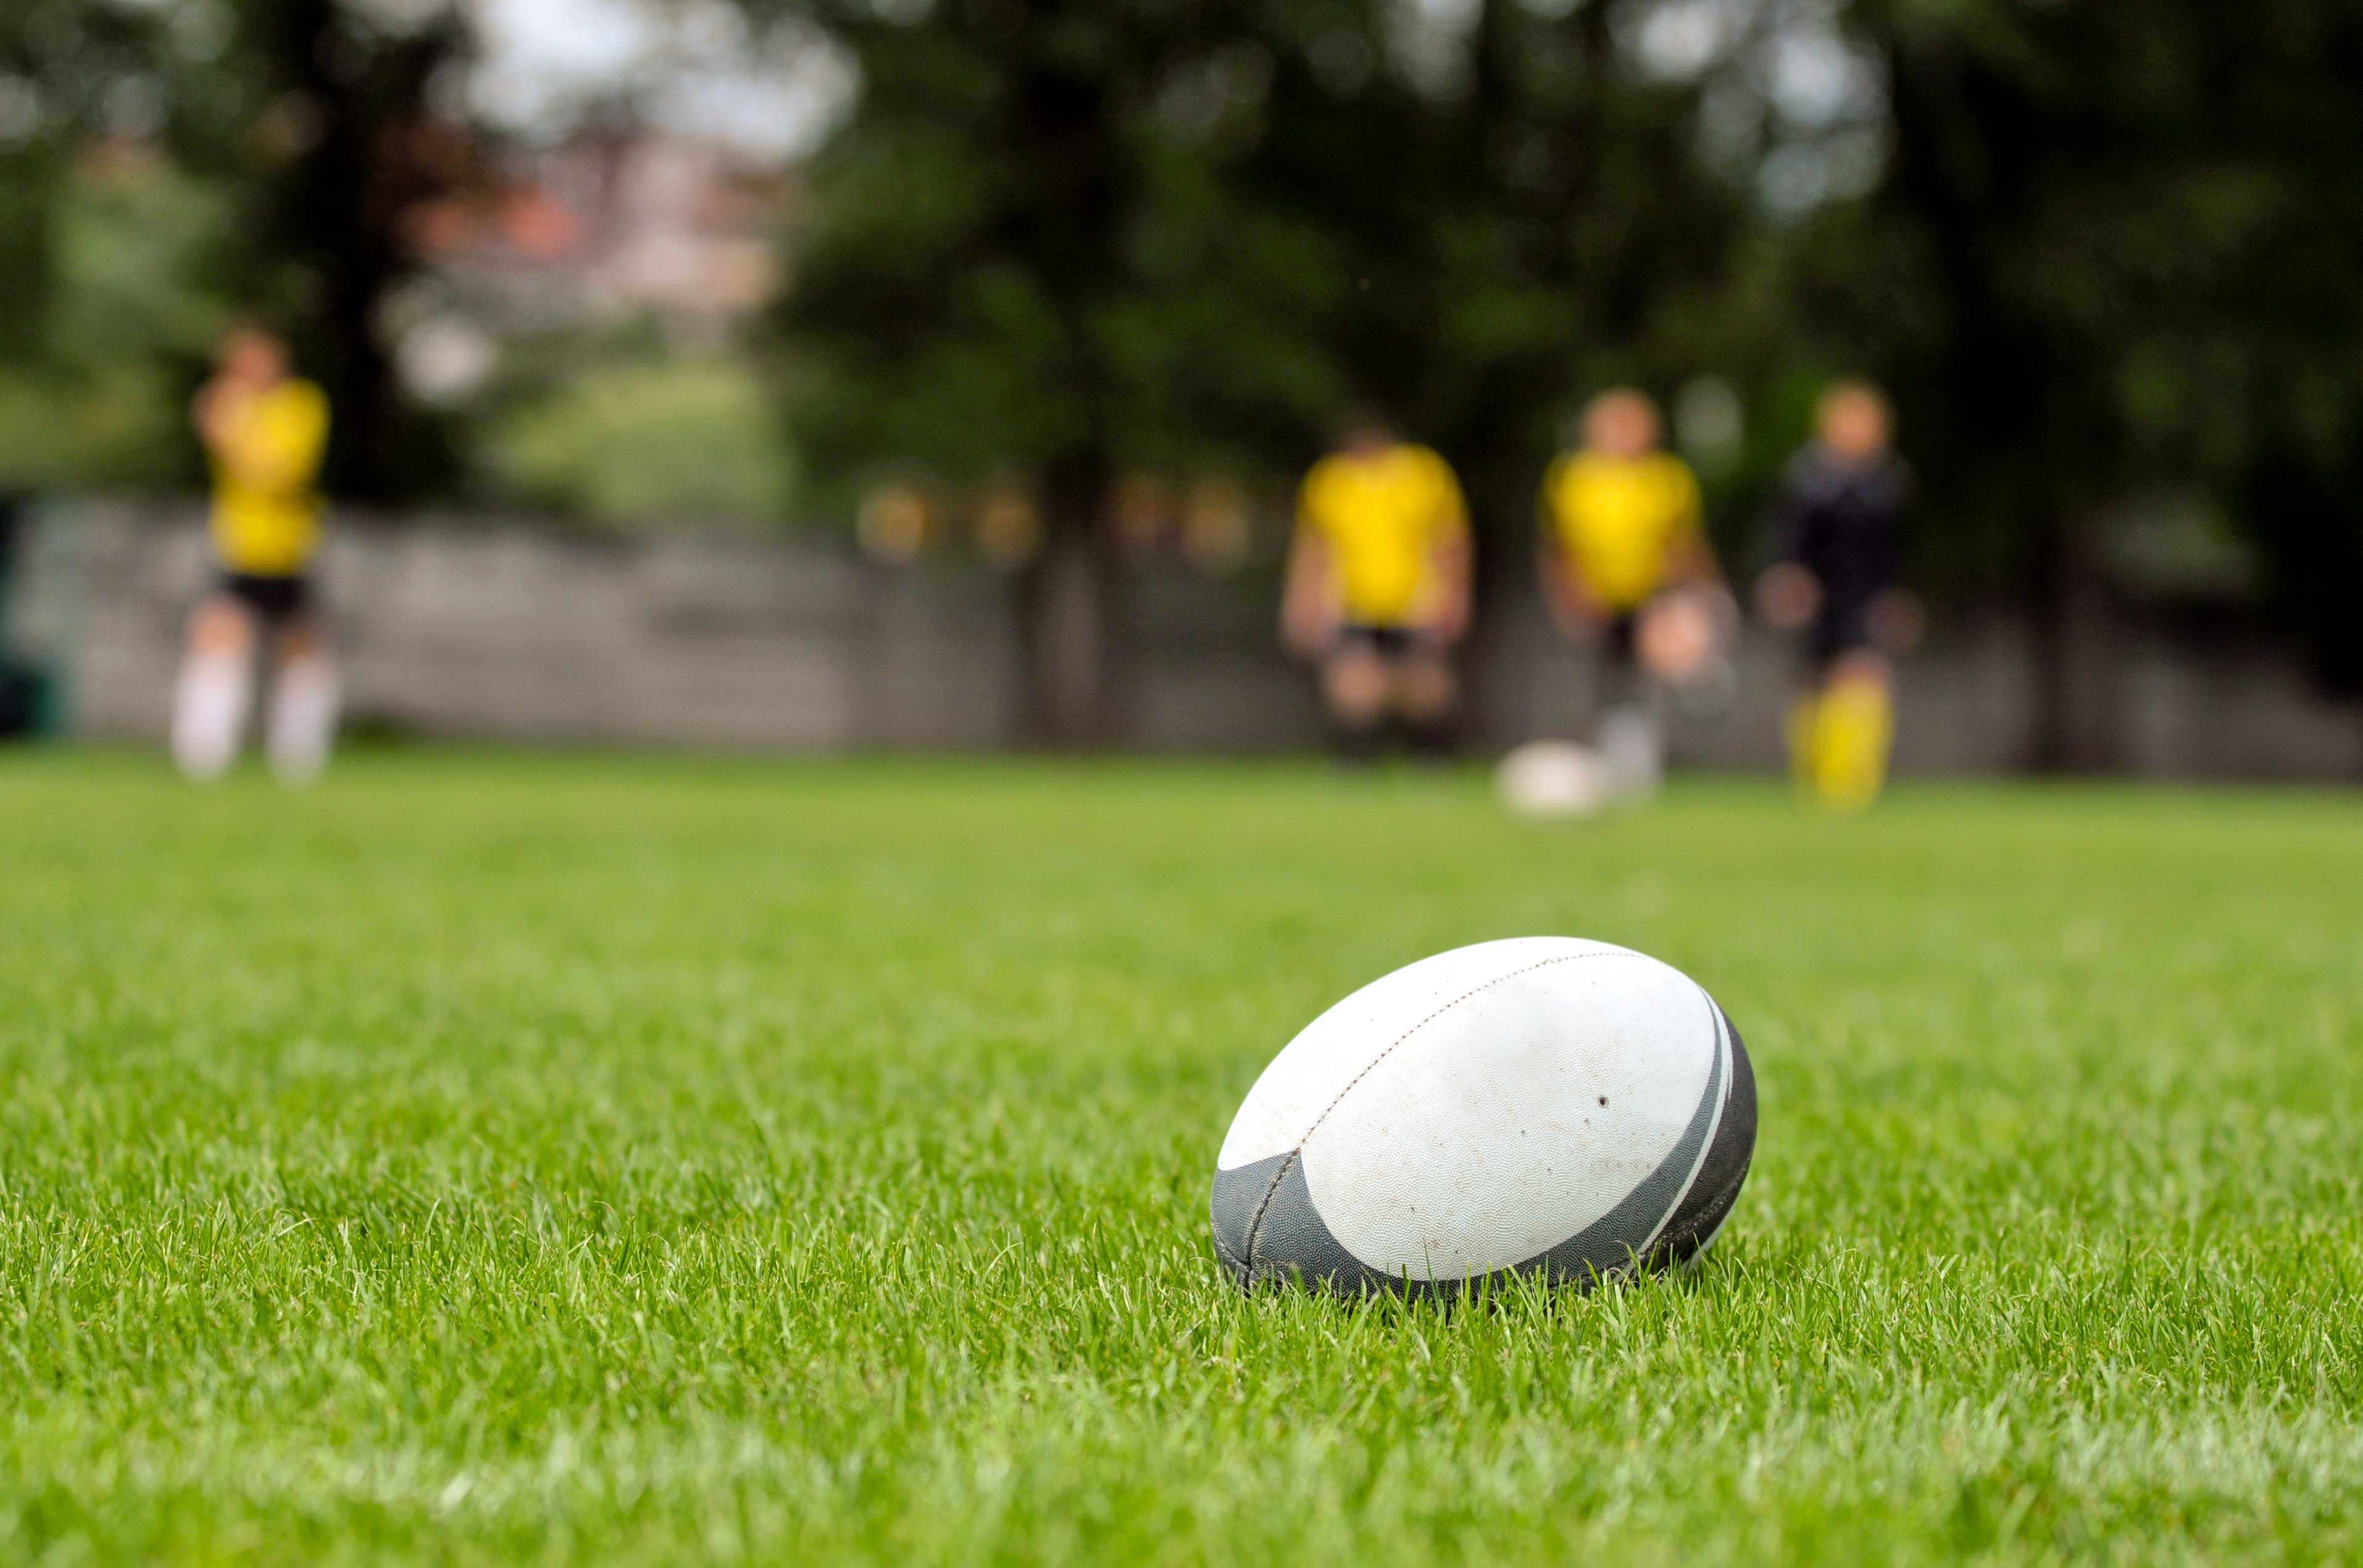 Rugby ball at green grass. Photo taken at rugby training.